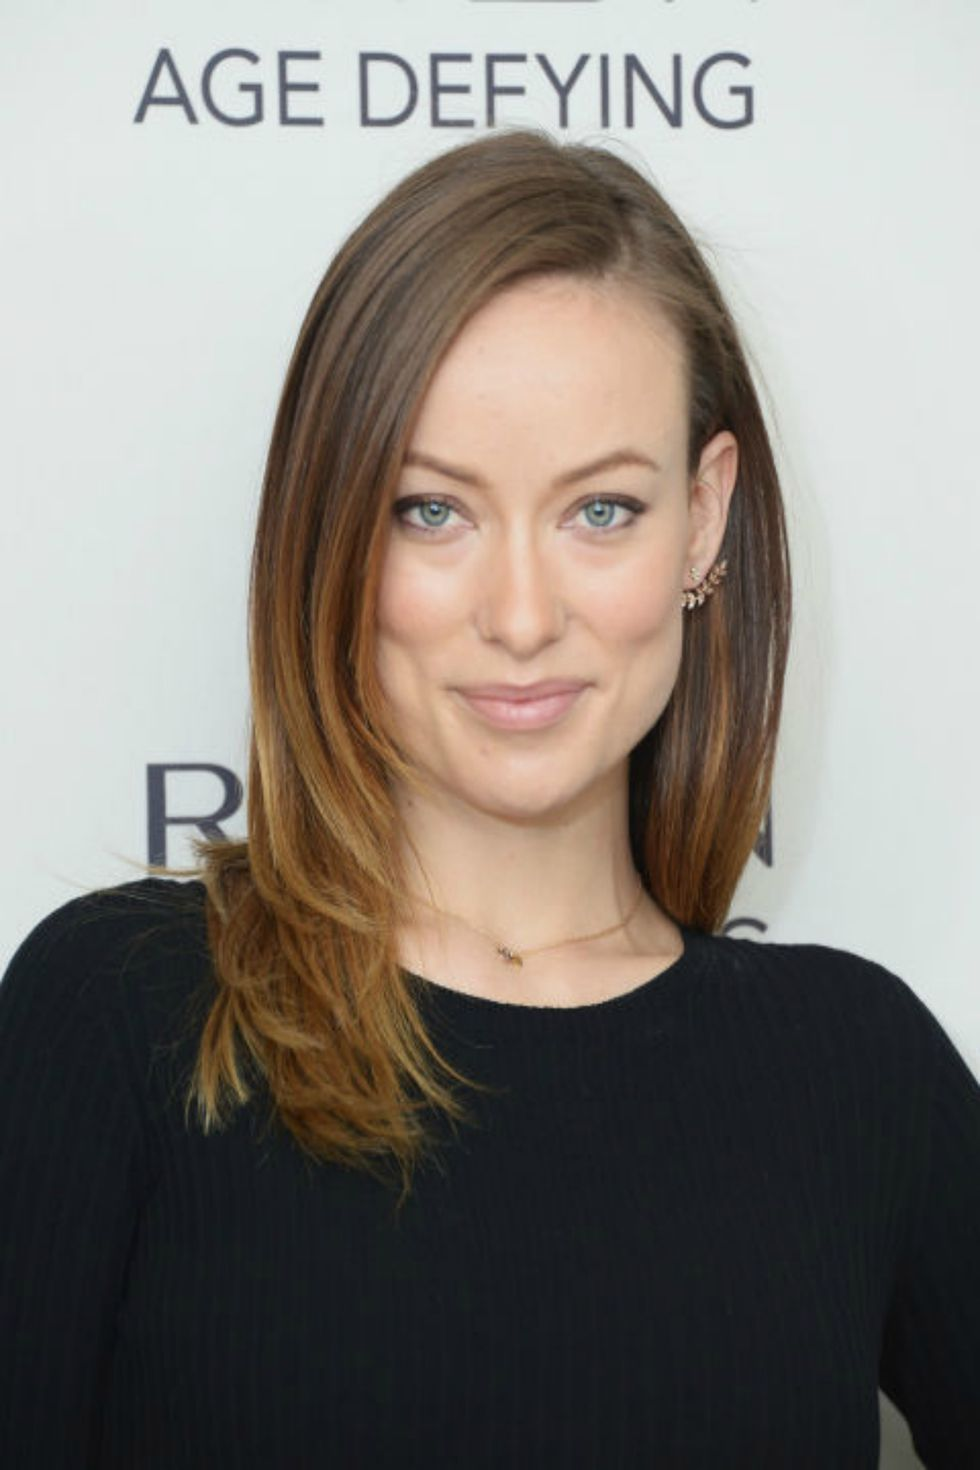 1445877554 548fcf4d9276a Rbk Medium Length Hair Olivia Wilde S2 59070141